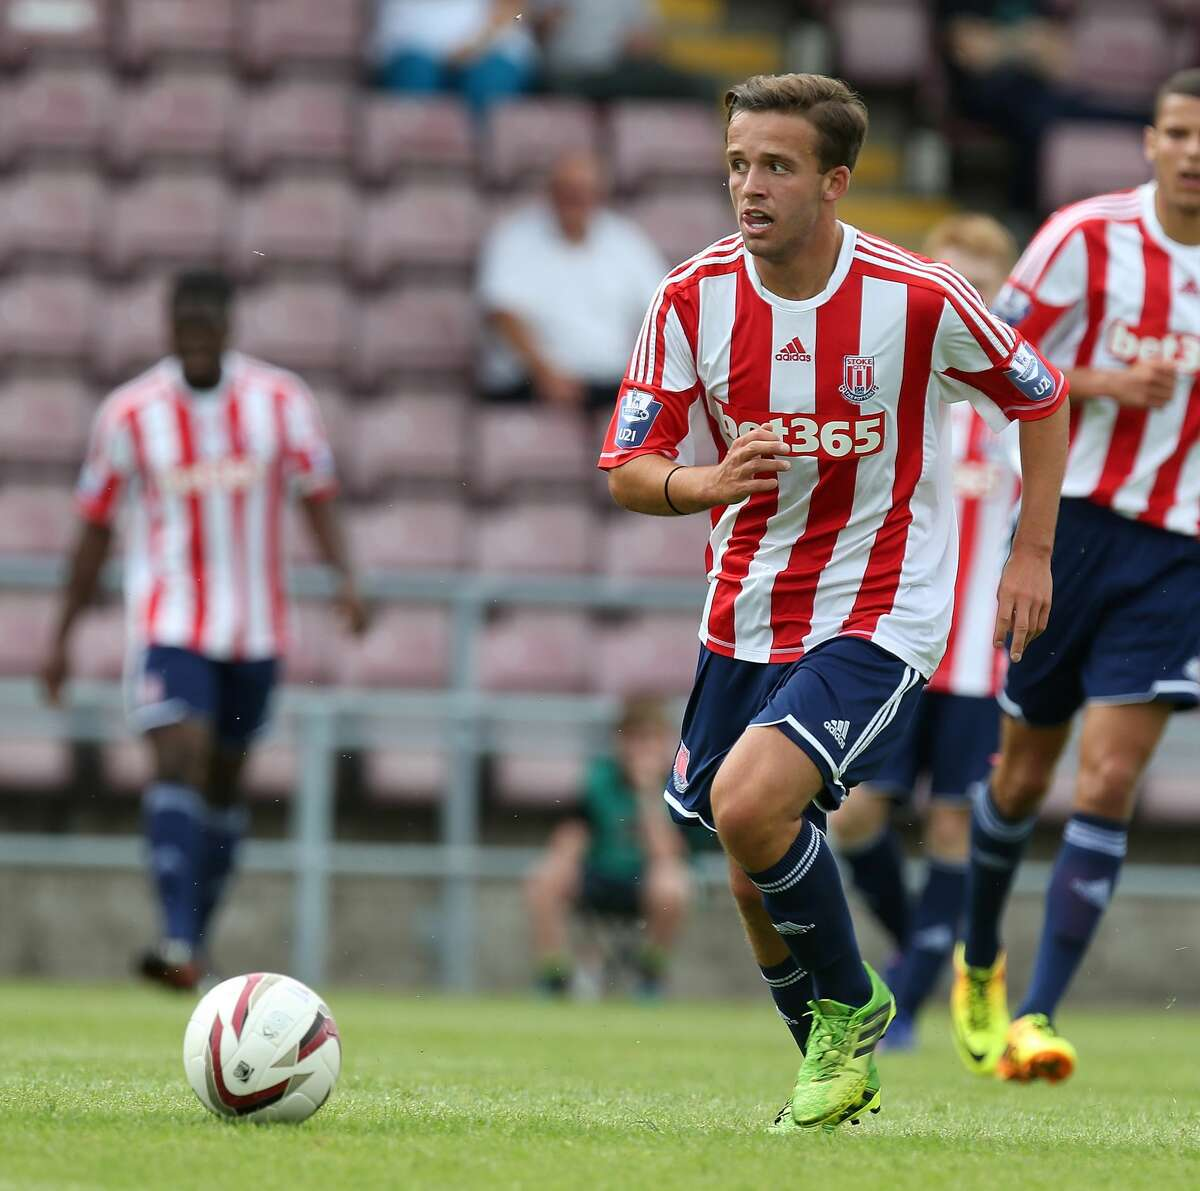 NORTHAMPTON, ENGLAND - JULY 27: Charlie Ward of Stoke City in action during the Pre-Season Friendly match between Northampton Town and Stoke City Development Squad at Sixfields Stadium on July 27, 2013 in Northampton, England. (Photo by Pete Norton/Getty Images)